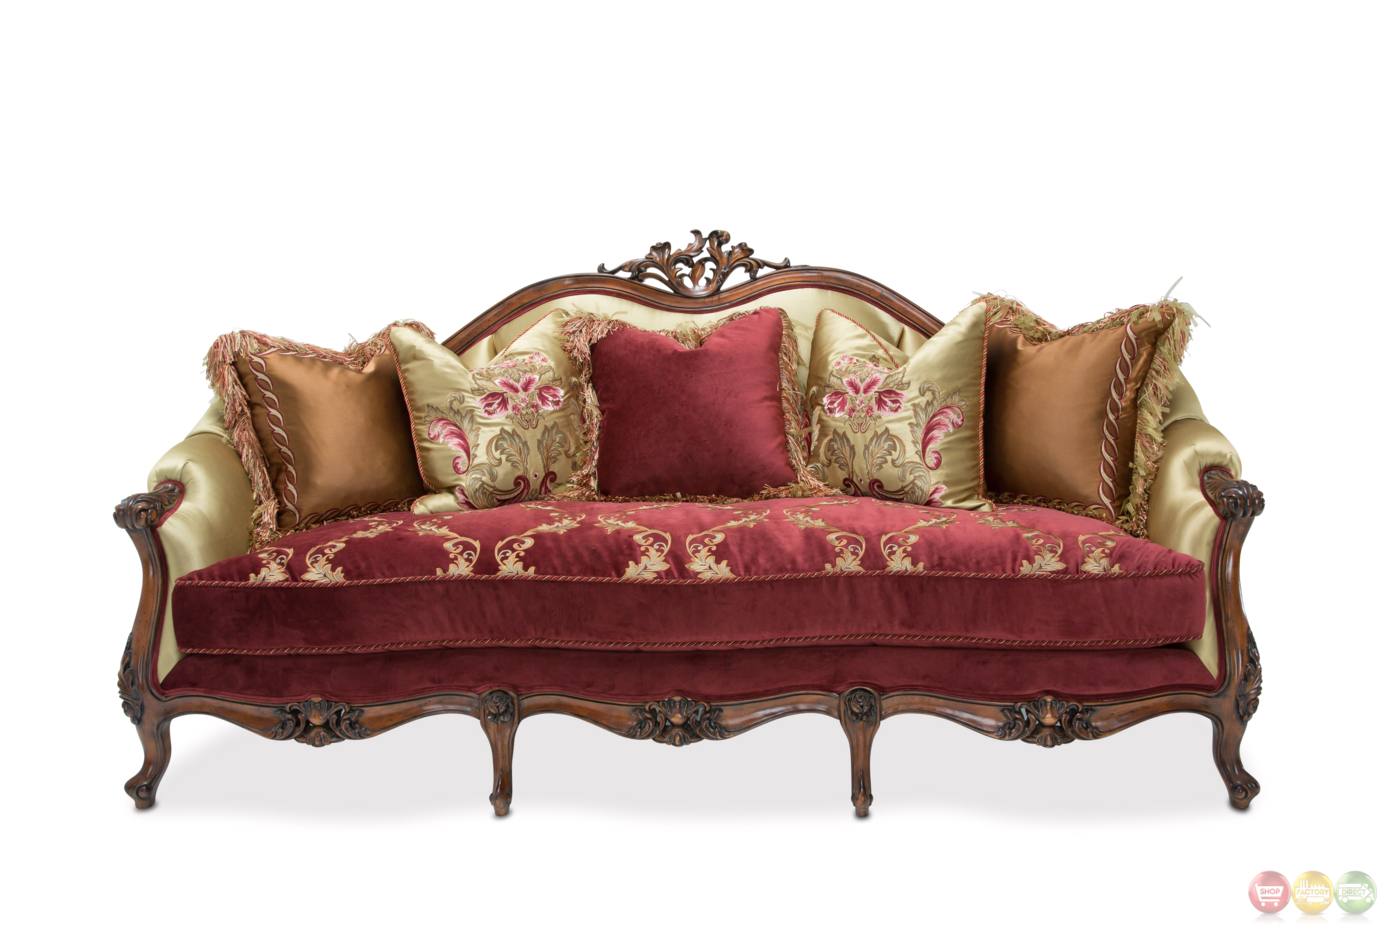 Monique Victorian Ruby Red And Gold Embroidered Sofa In